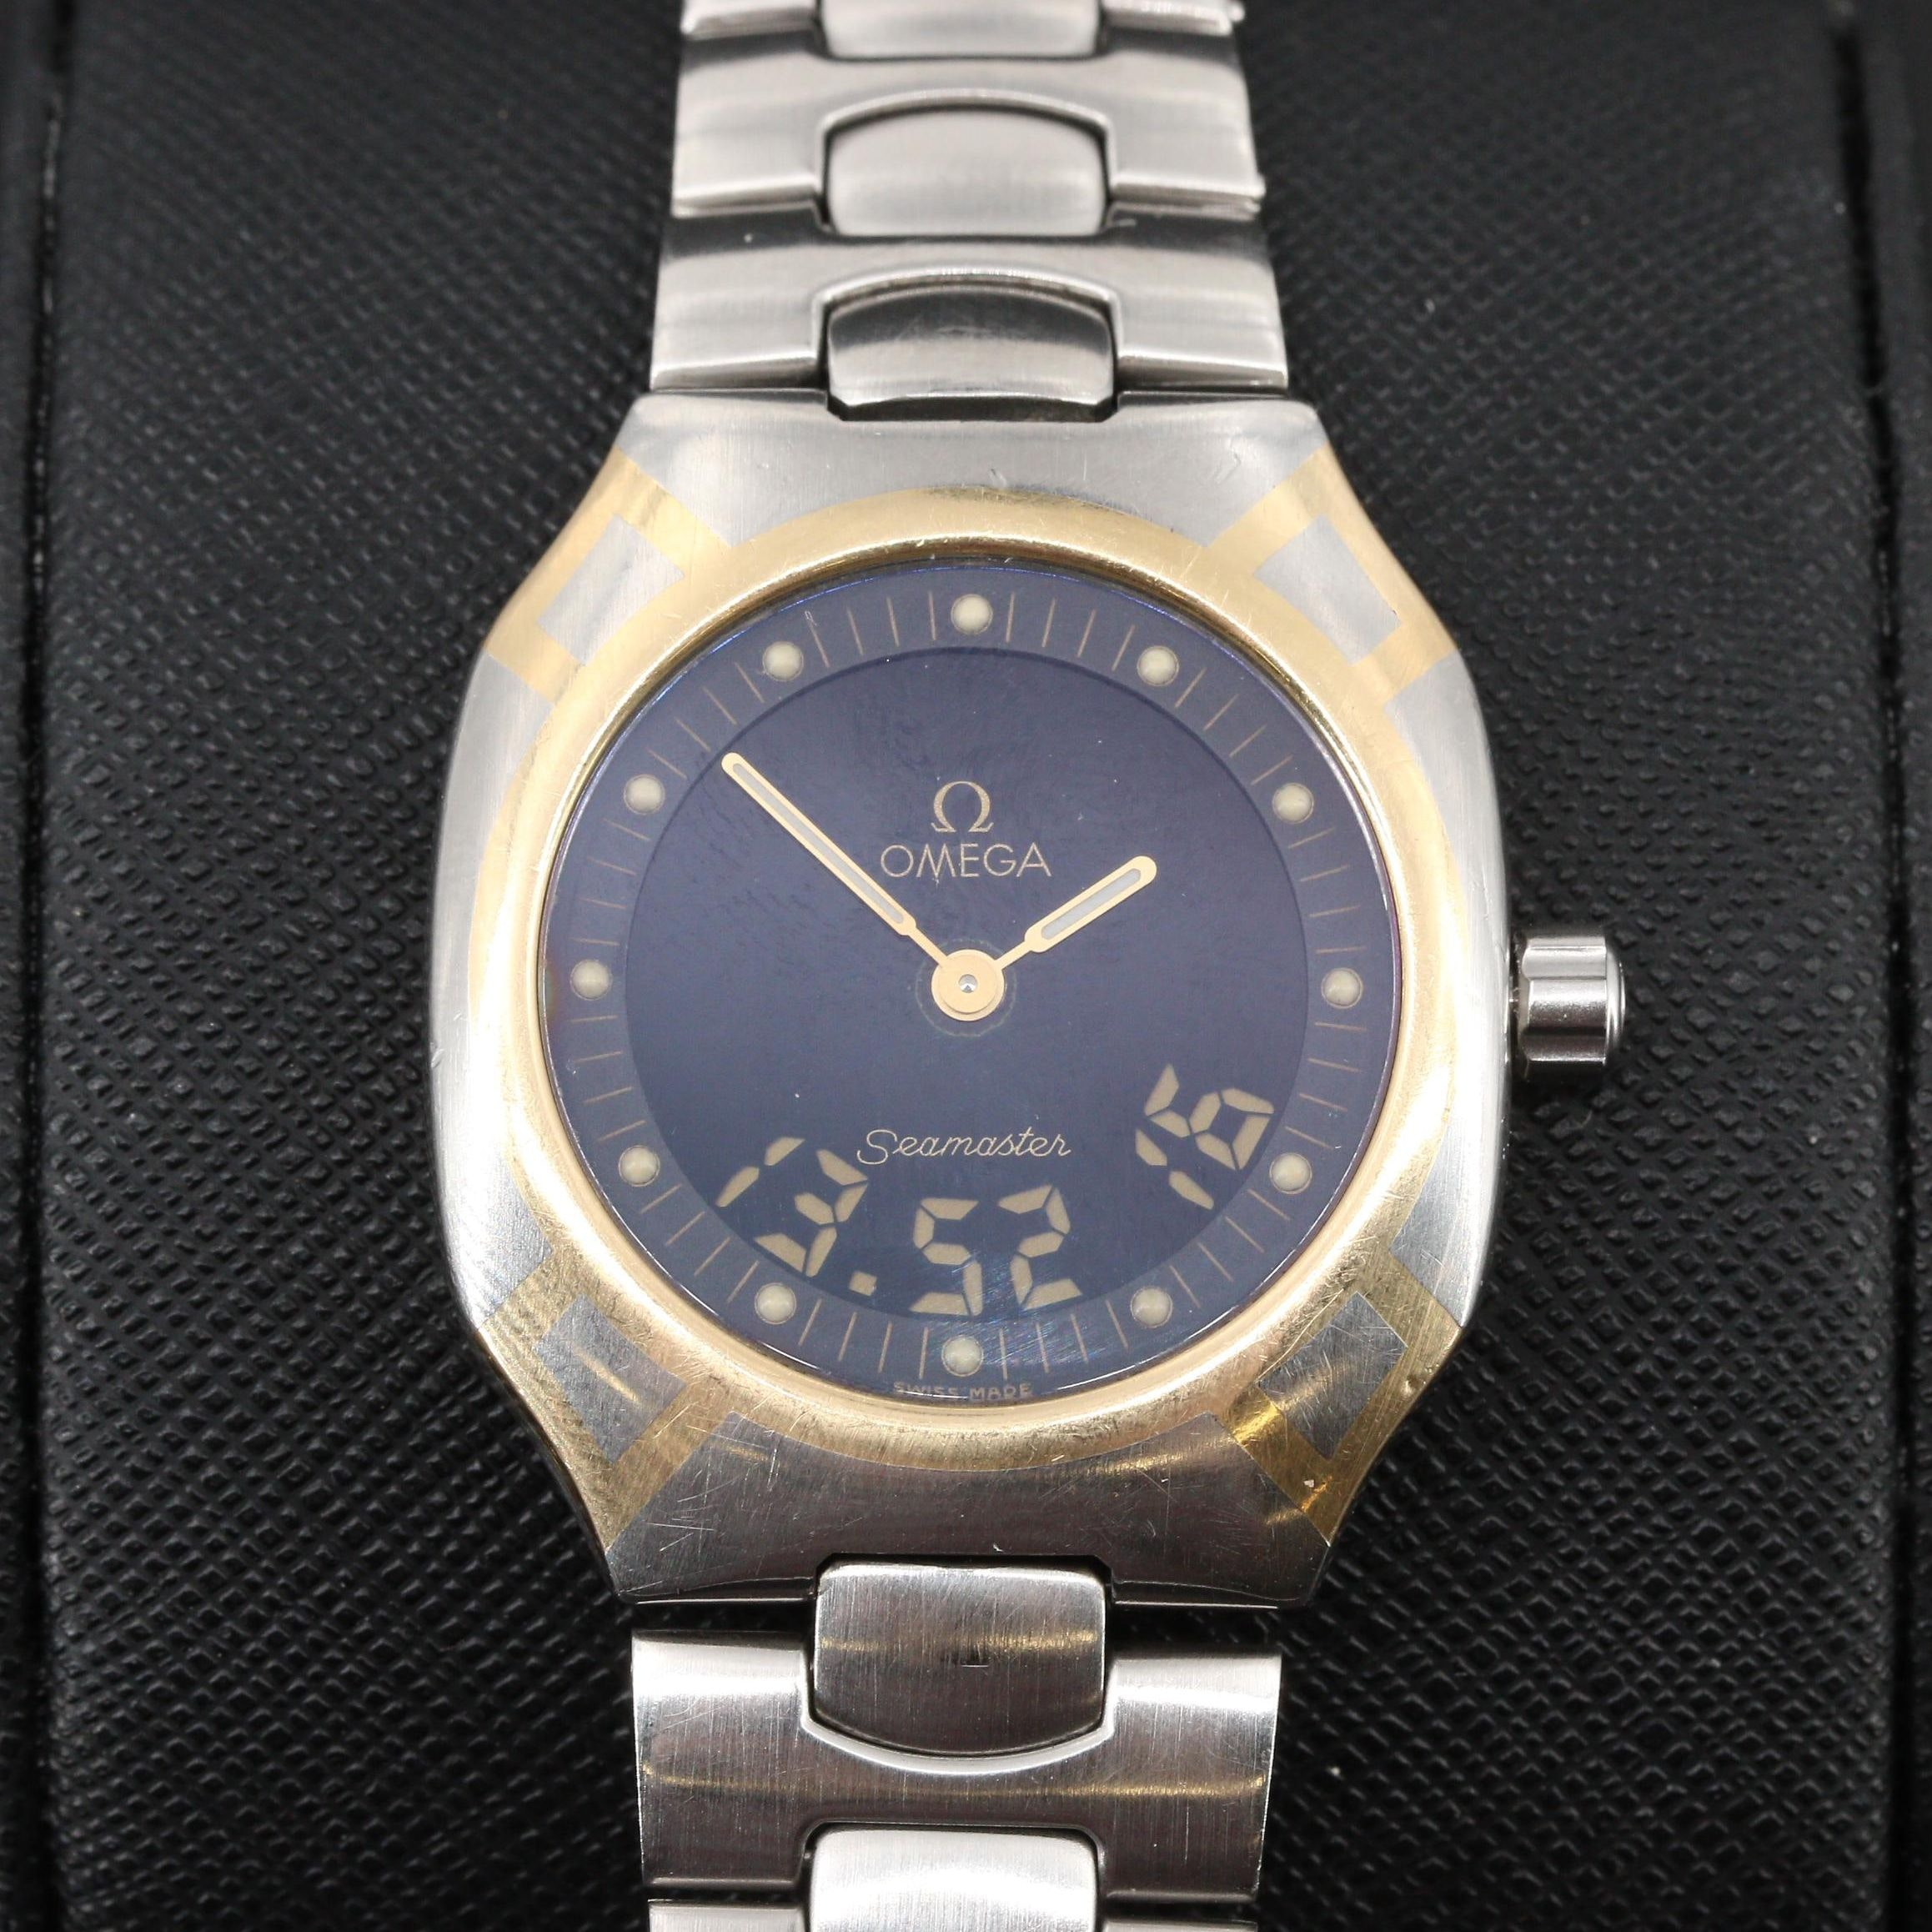 Omega Seamaster Polaris Analog/Digital Quartz Wristwatch, Circa 1988